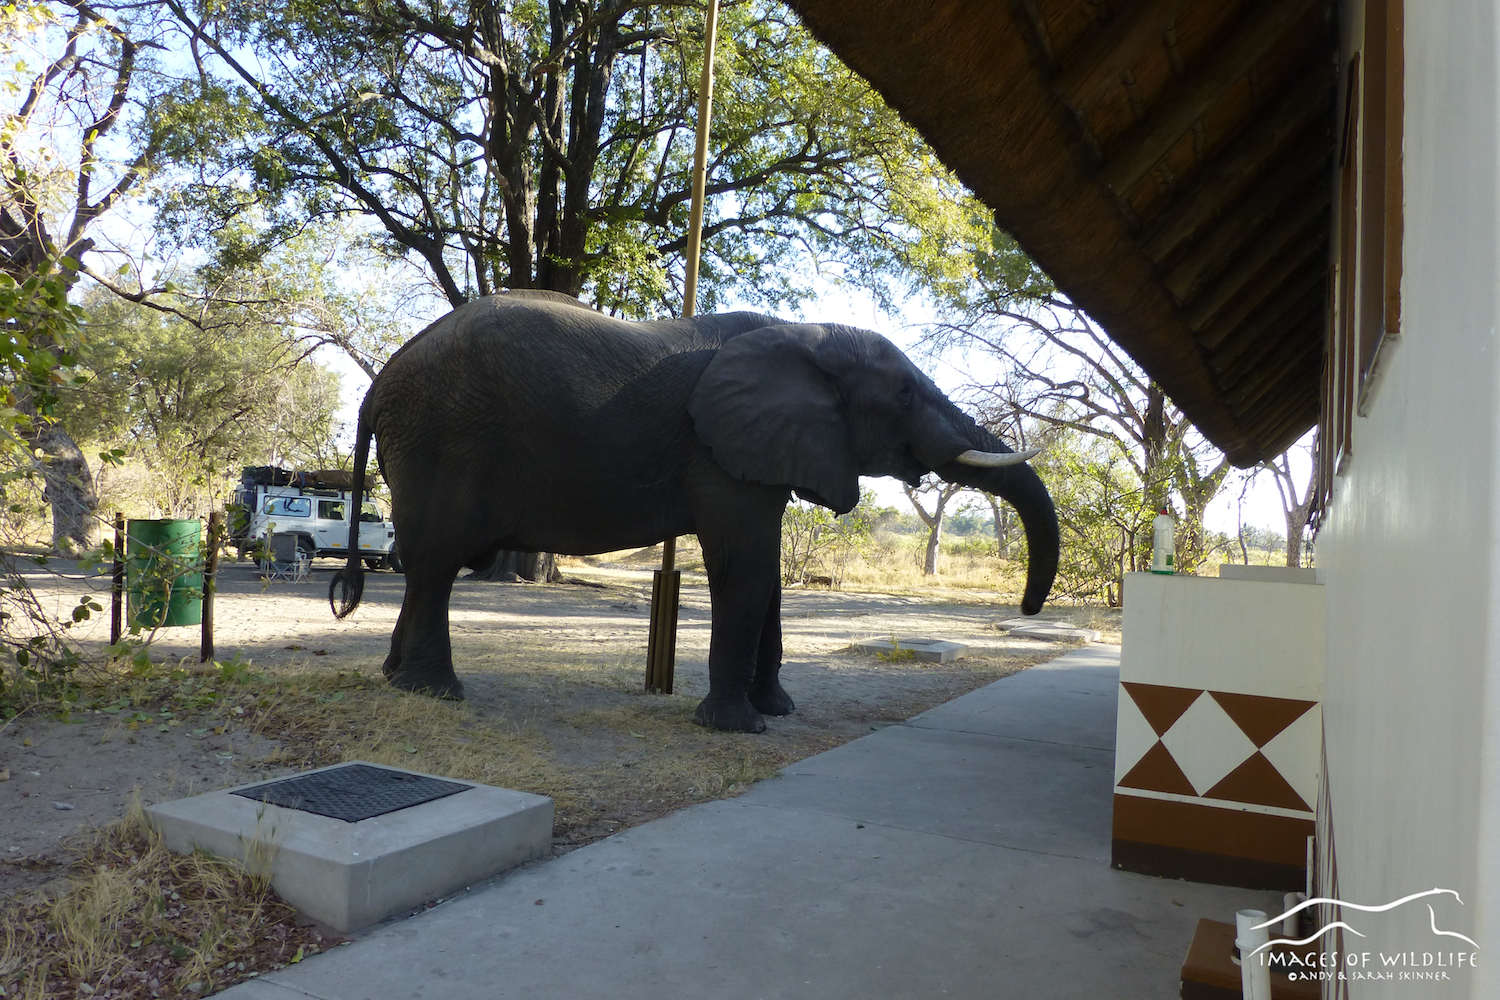 Bull elephant visits the washrooms, Xakanaxa Campsite, Botswana